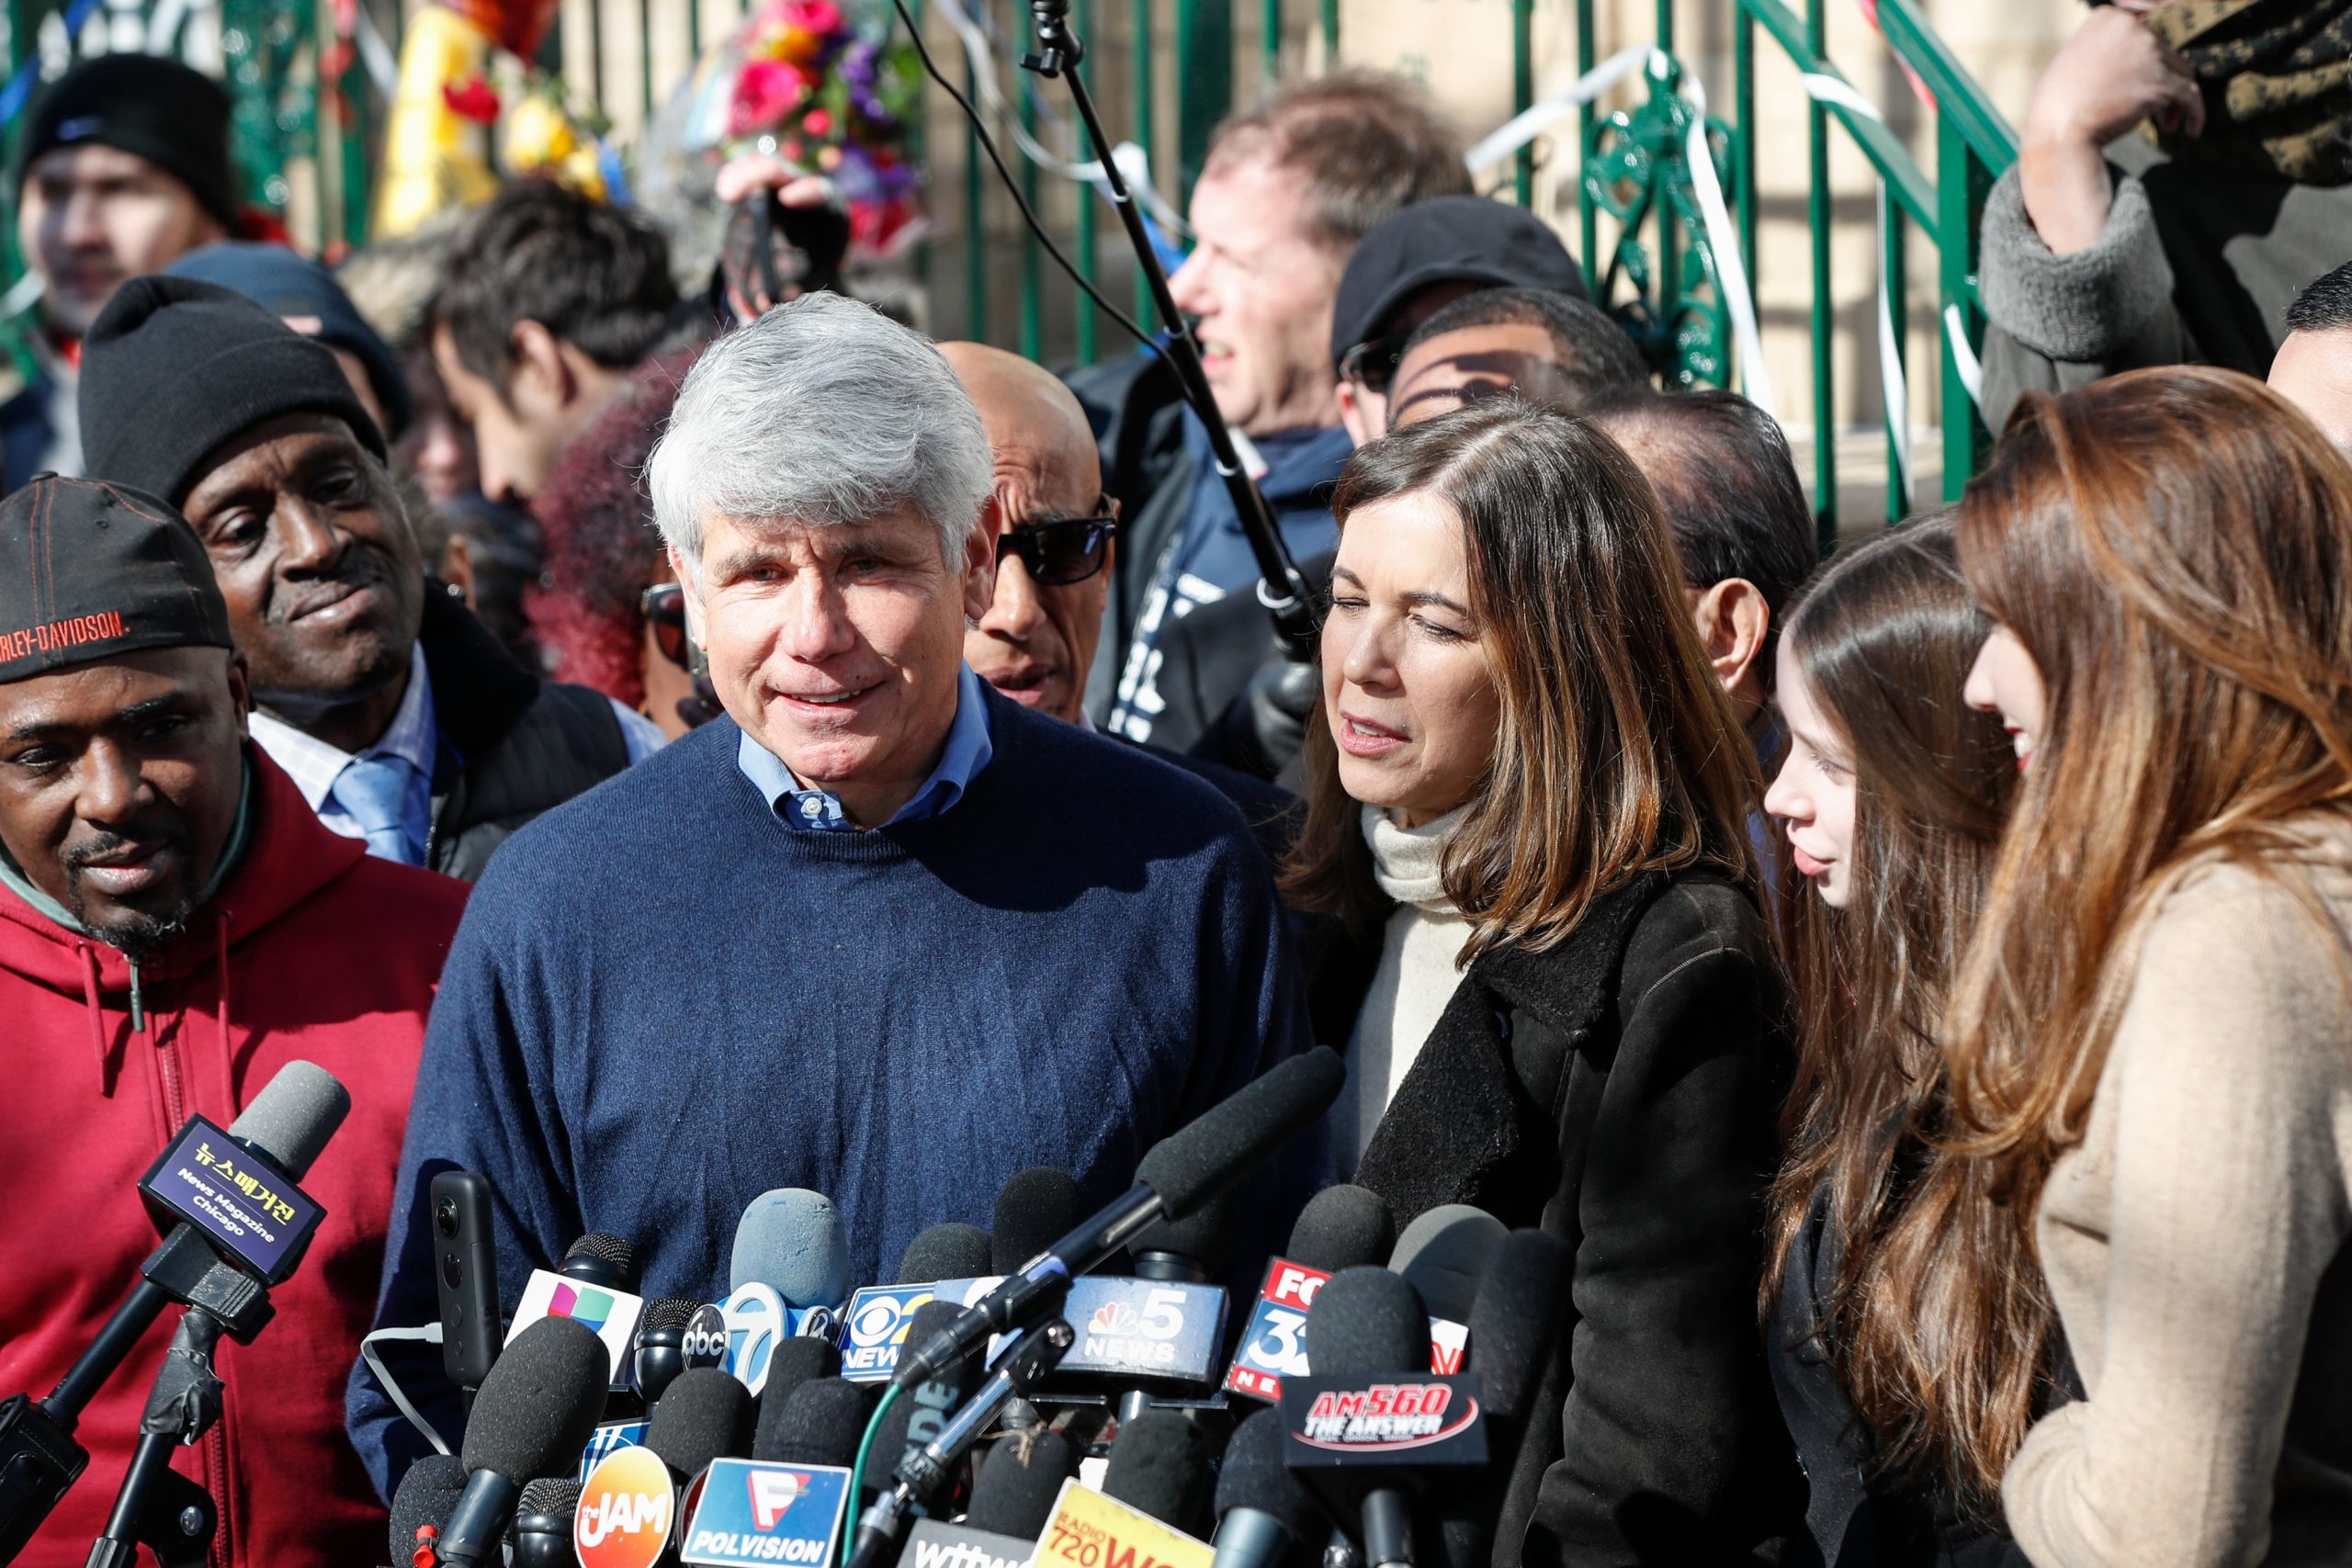 Former Illinois governor Rod Blagojevich (2-L) smiles as he speaks next to his wife Patricia Blagojevich outside of their house on February 19, 2020 in Chicago, Illinois. (Photo by KAMIL KRZACZYNSKI/AFP via Getty Images)